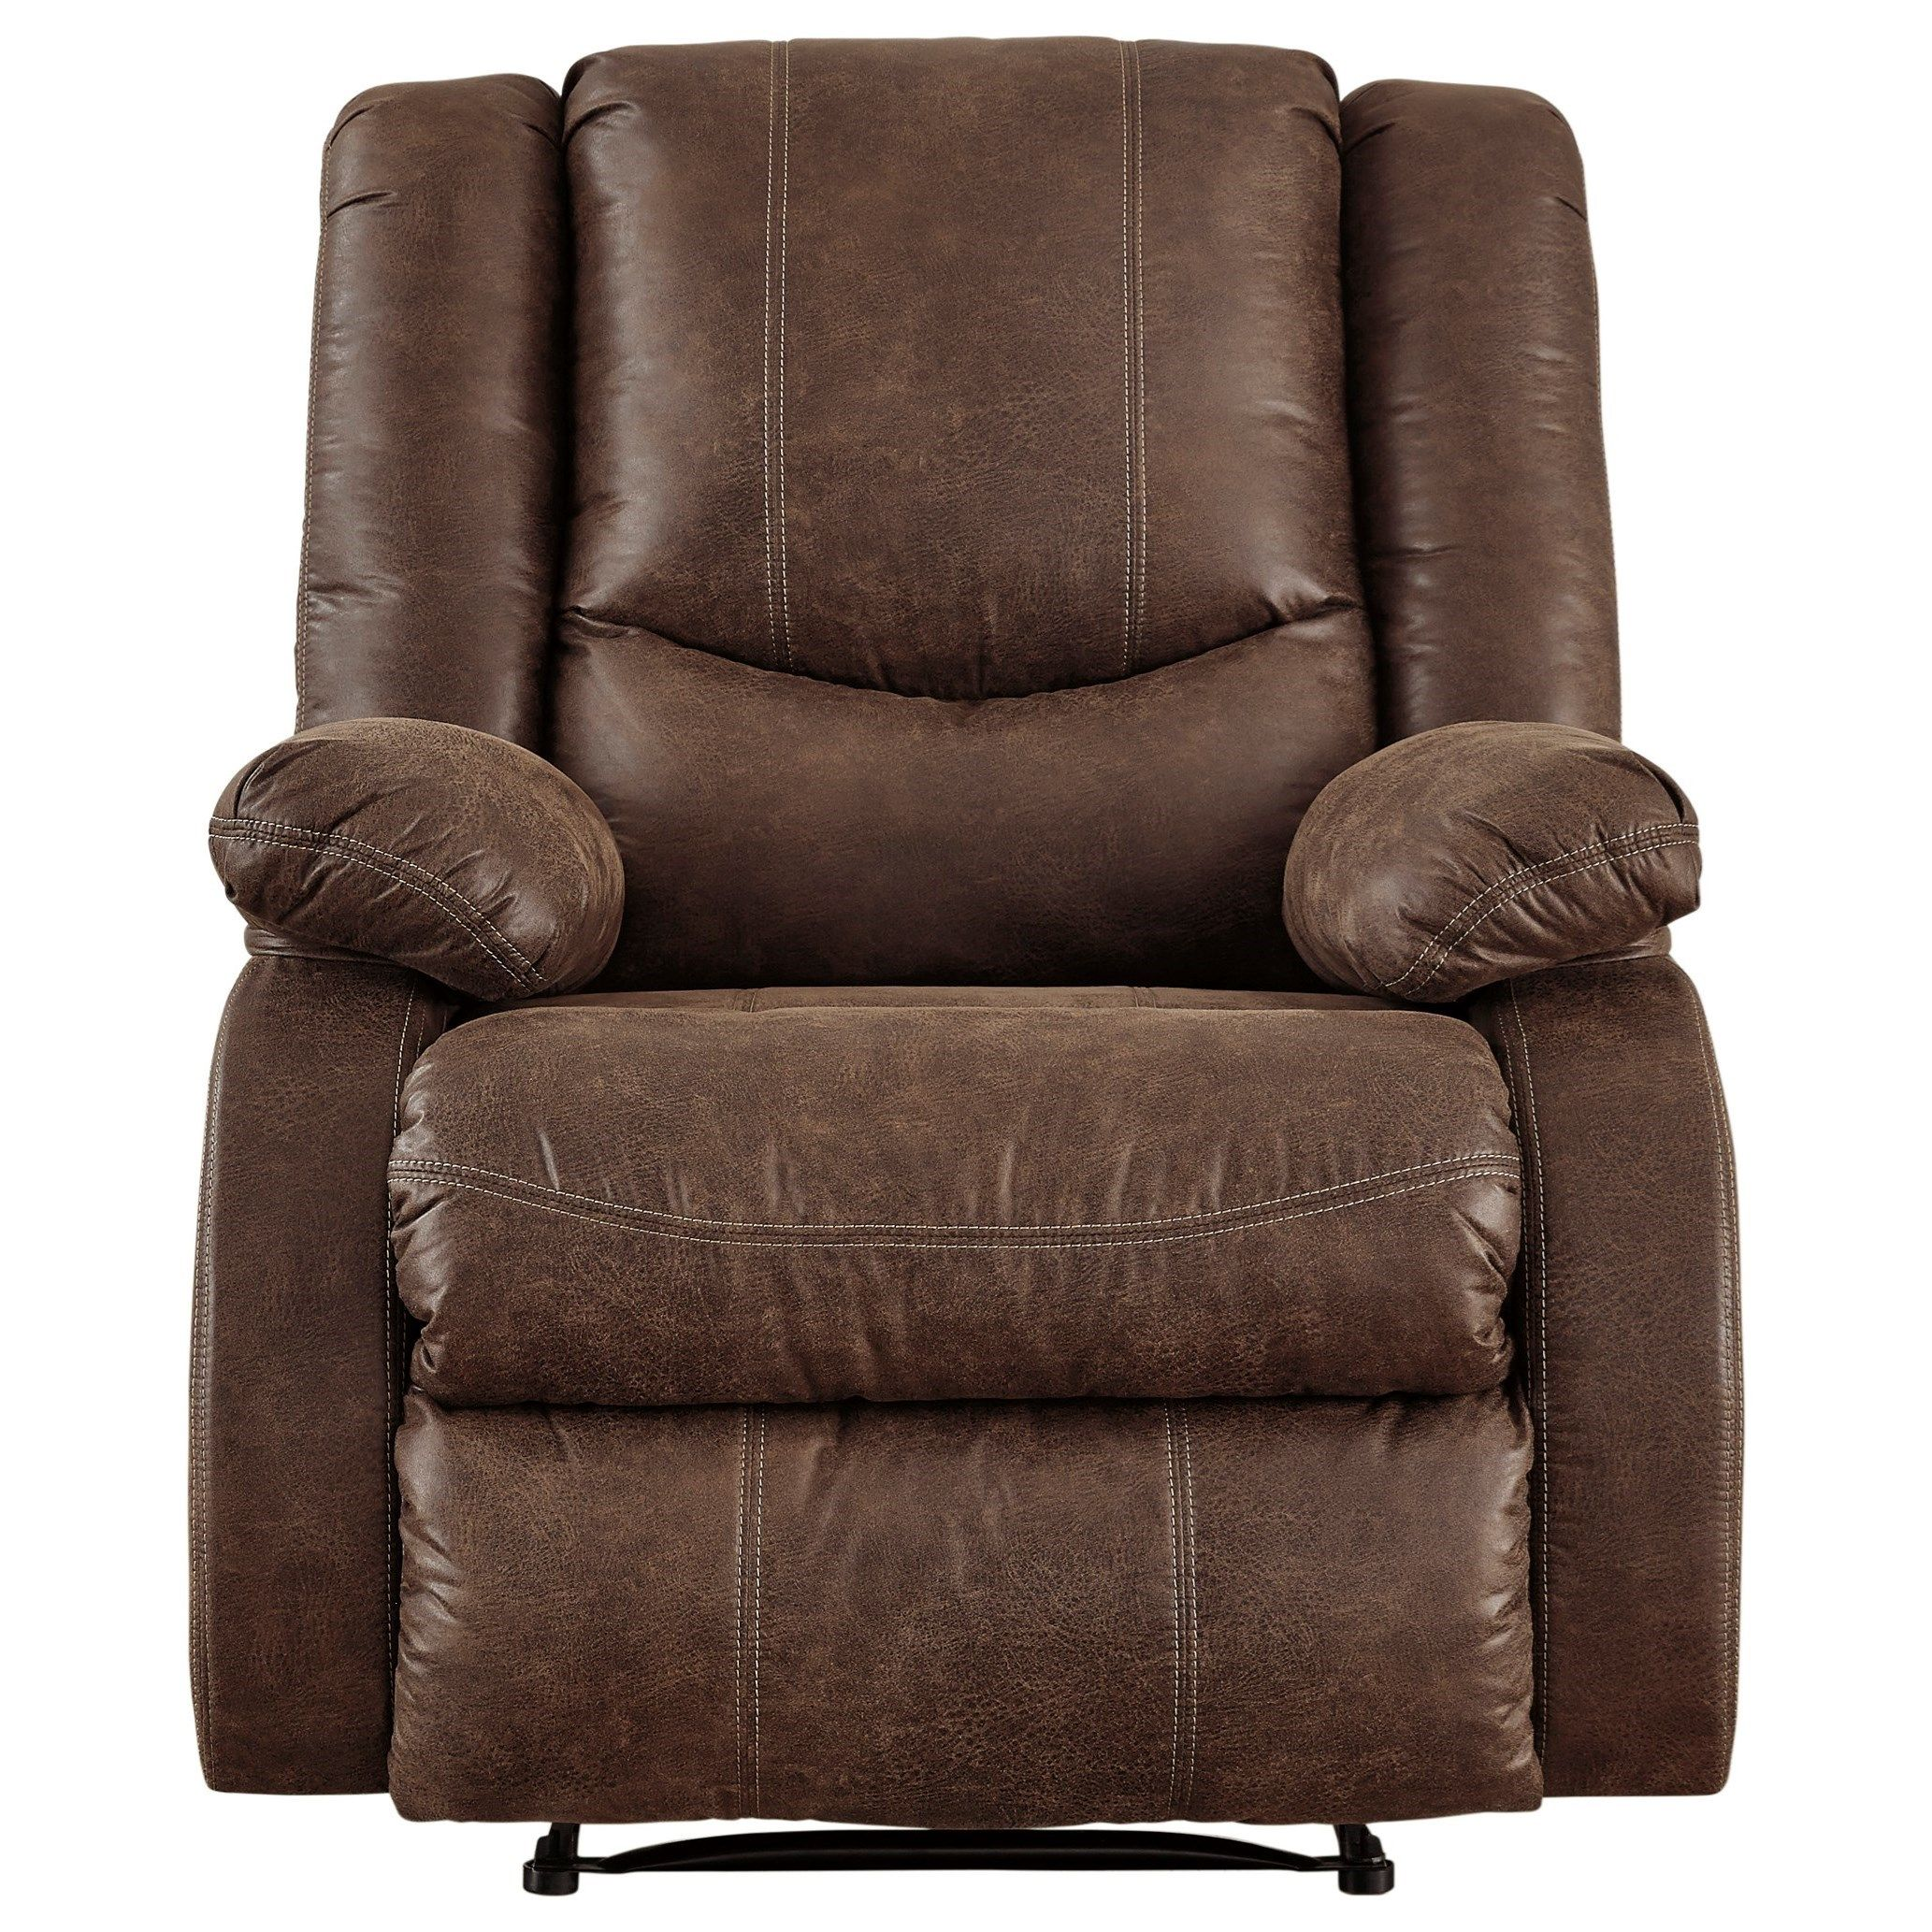 Bladewood Casual Zero Wall Recliner by Signature Design by